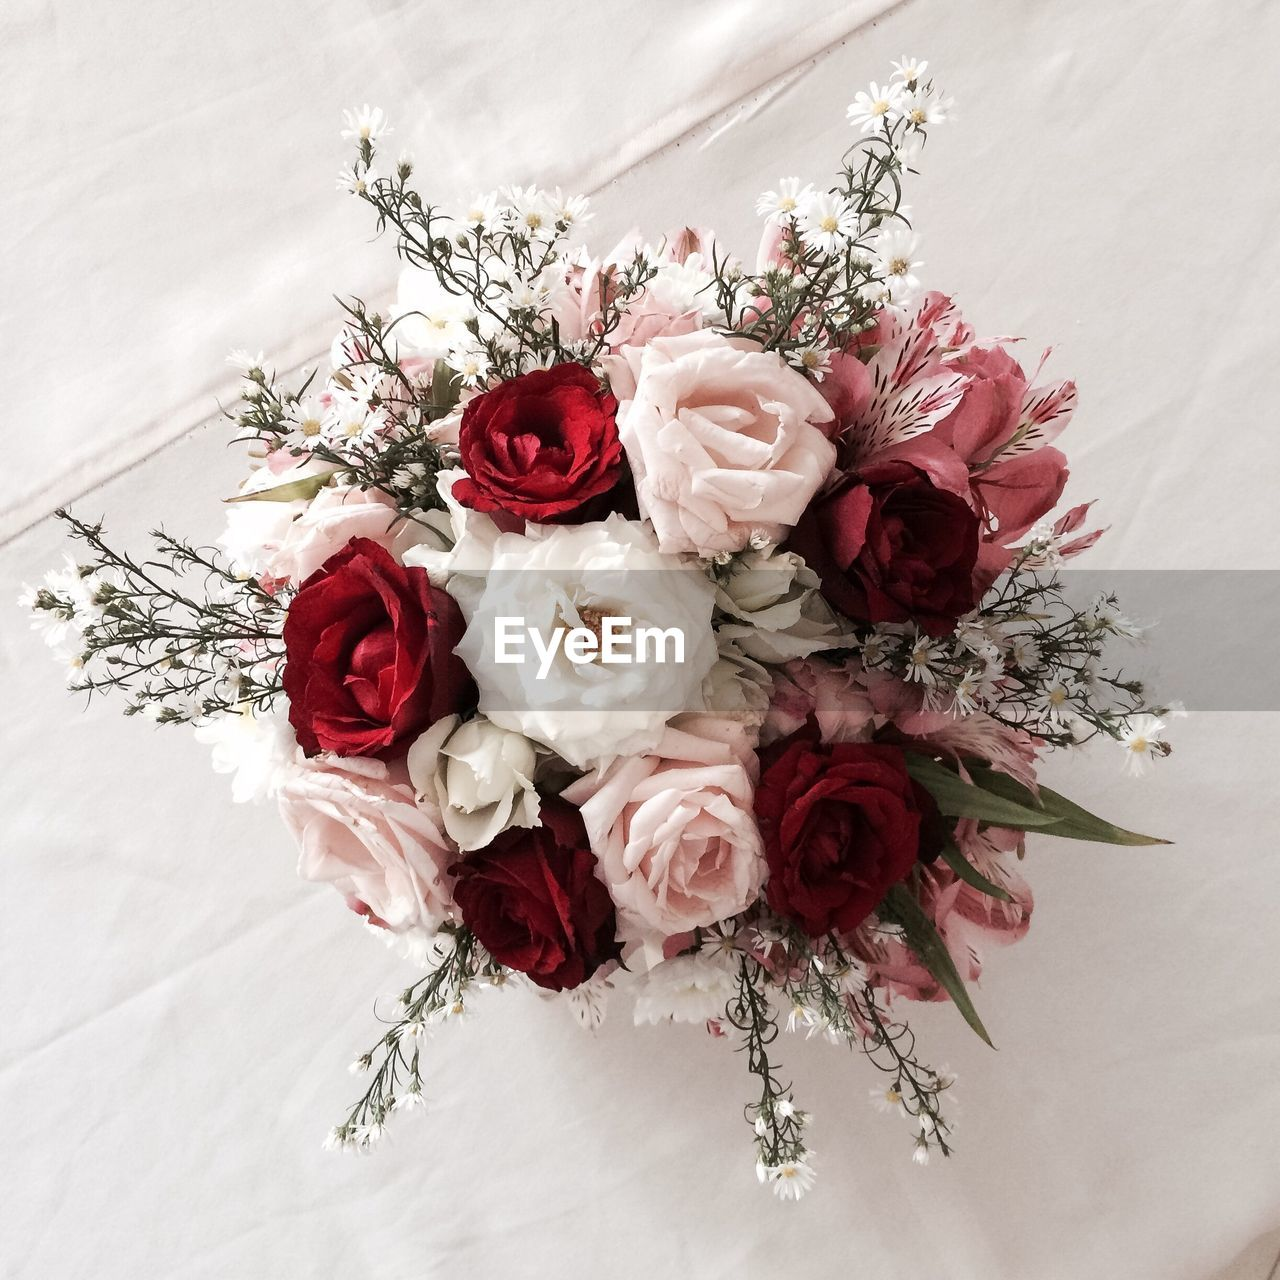 Directly above shot of rose bouquet on table